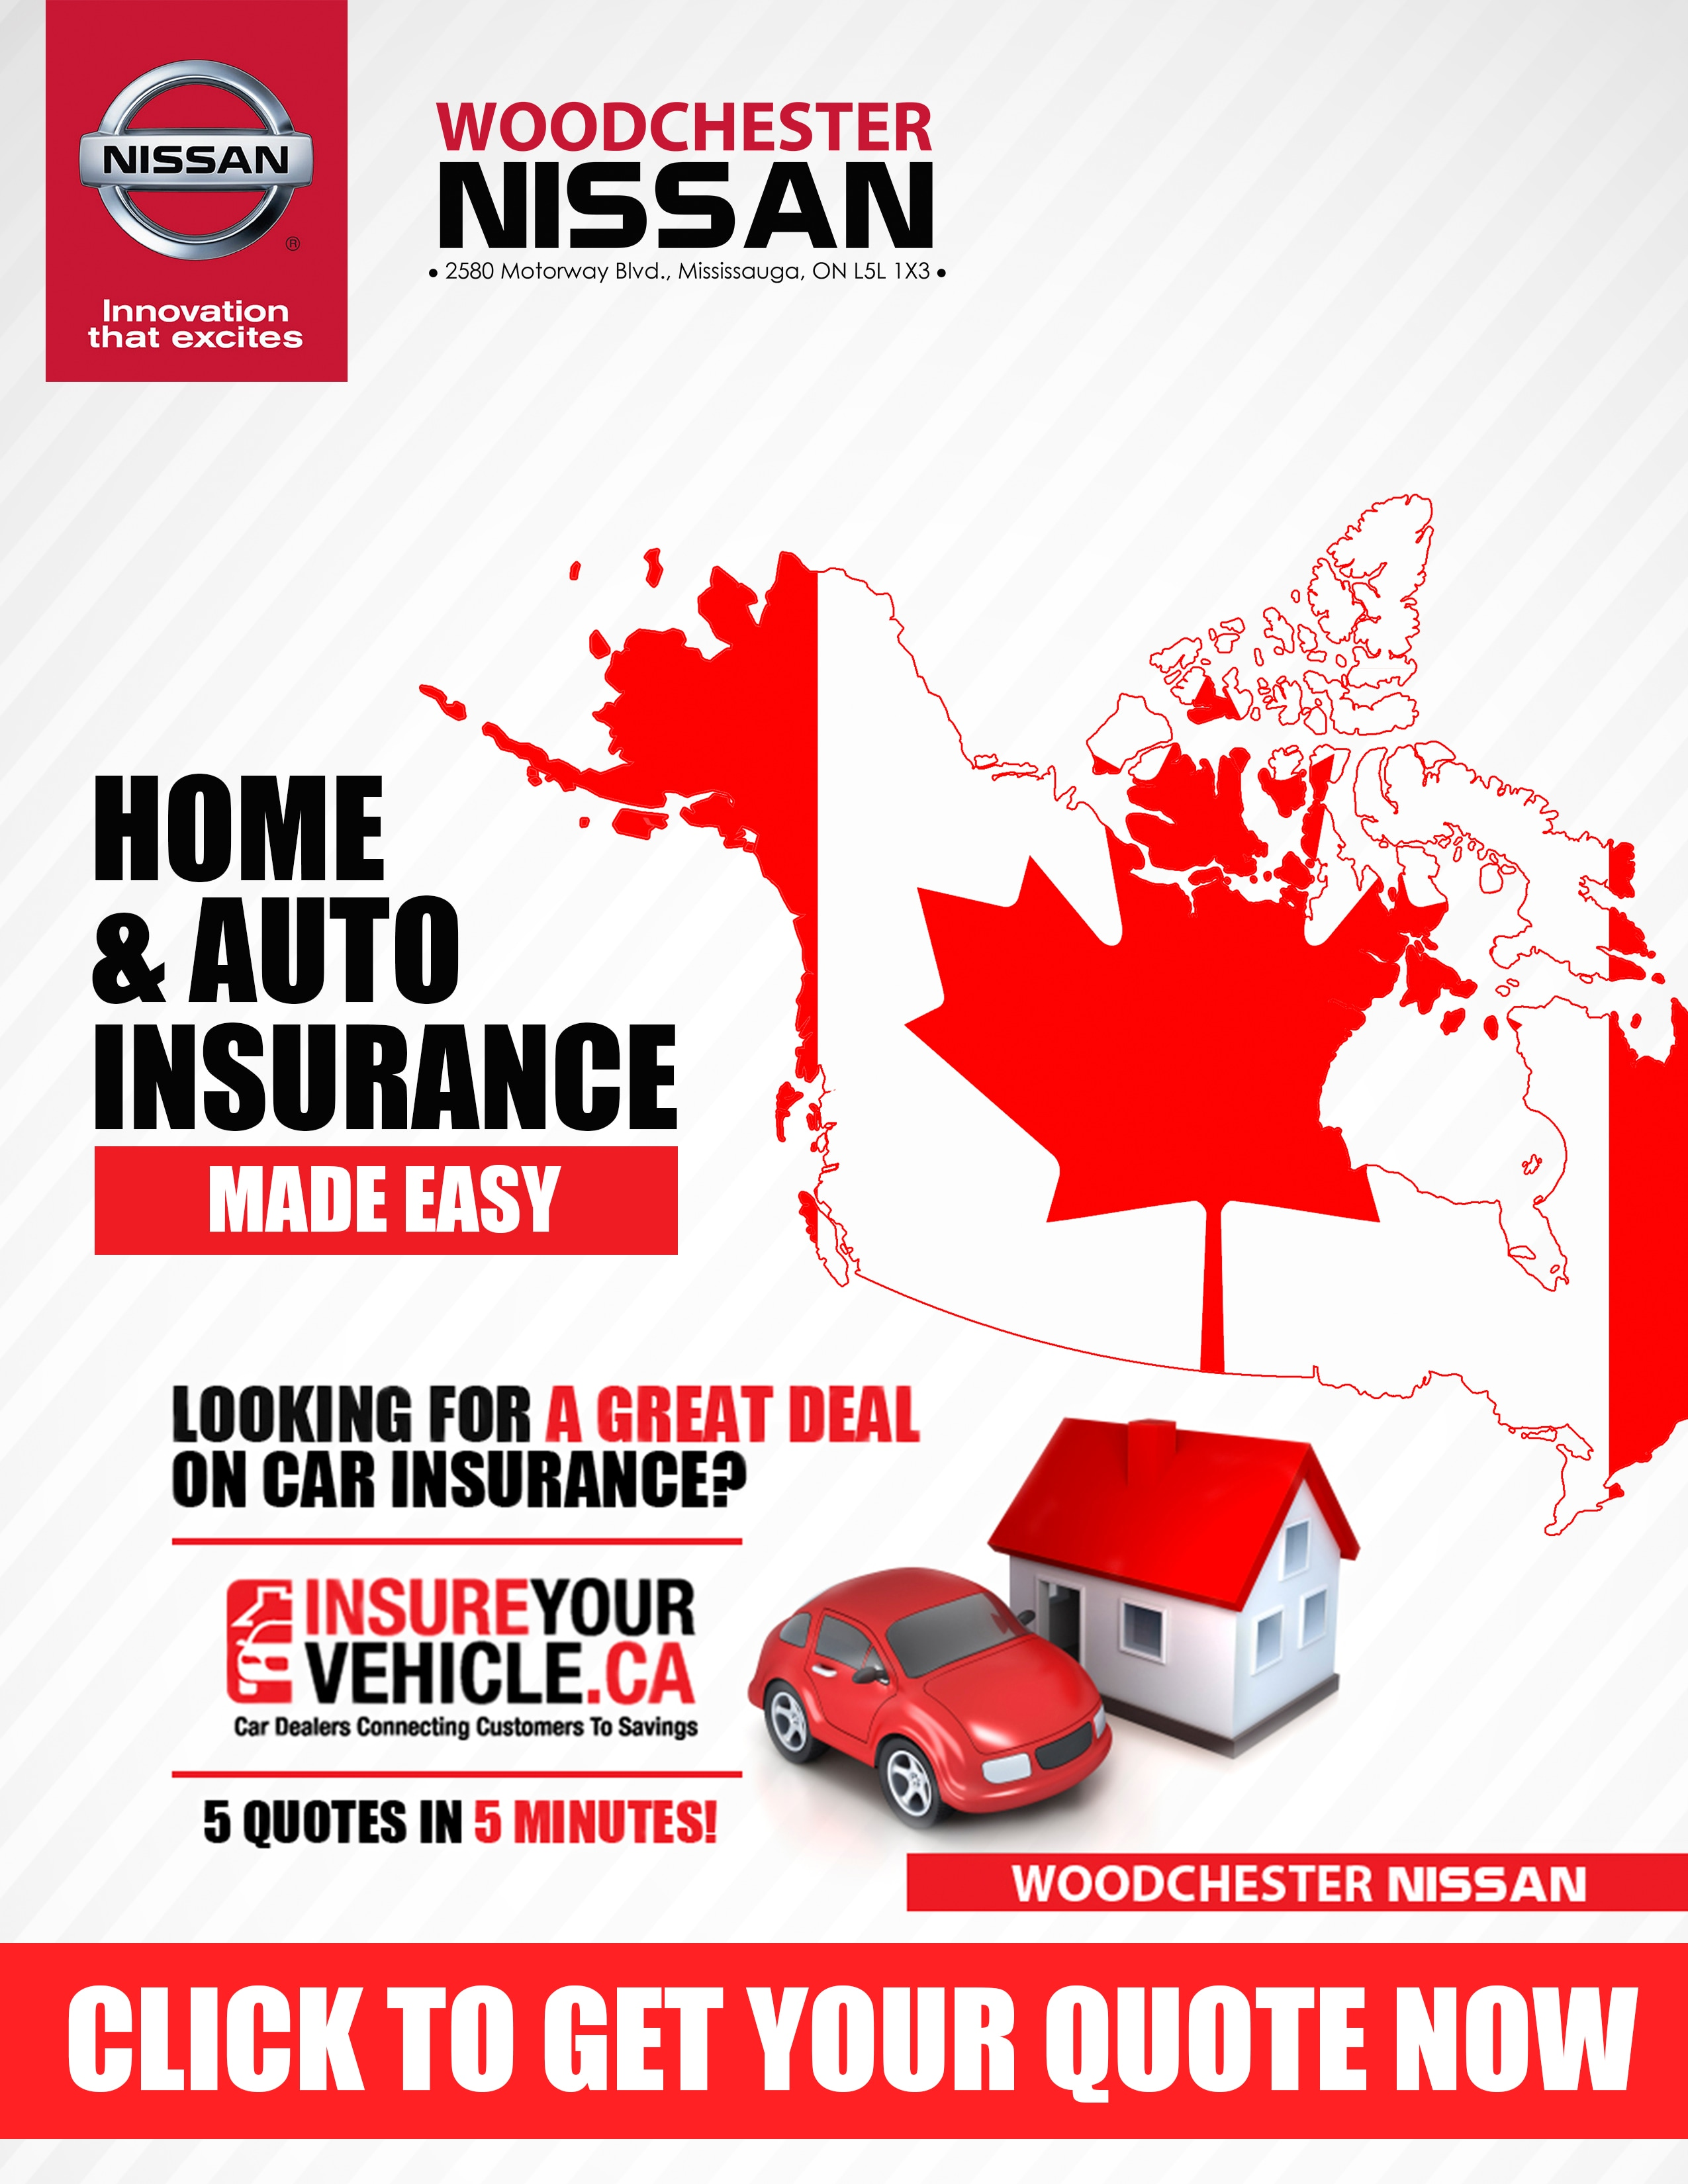 Insure your vehicle - Woodchester Nissan